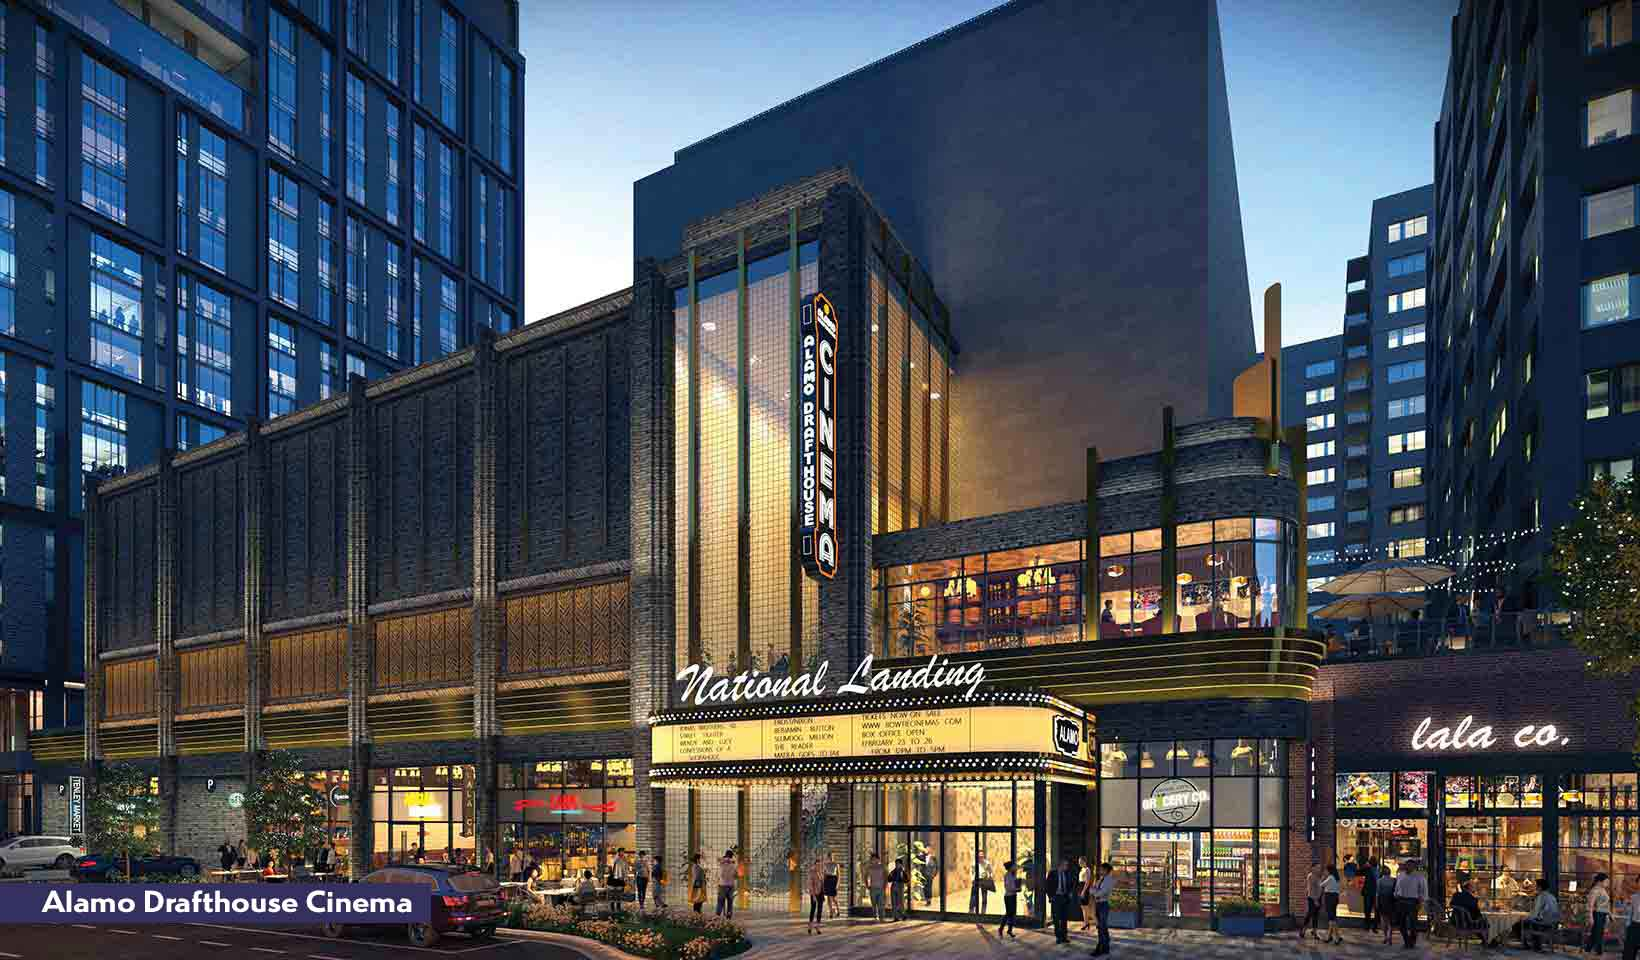 Rendering of the Alamo Drafthouse Cinema exterior